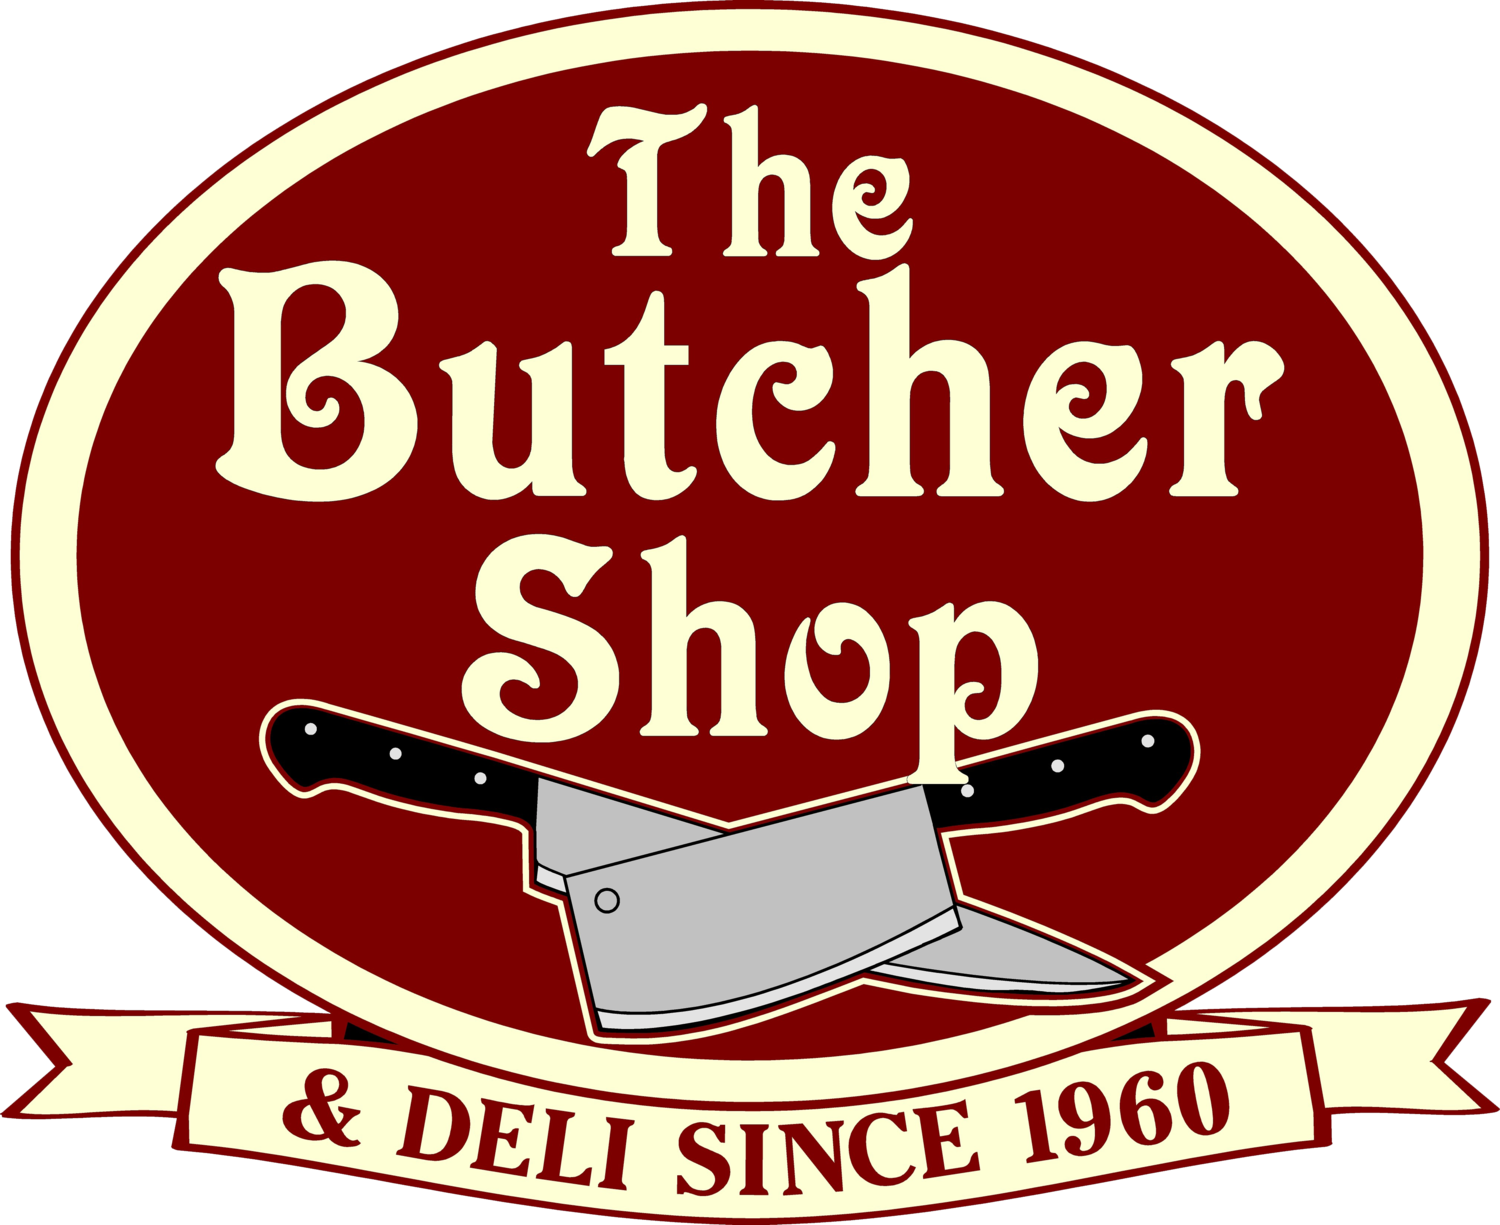 Paisanos Butcher Shop